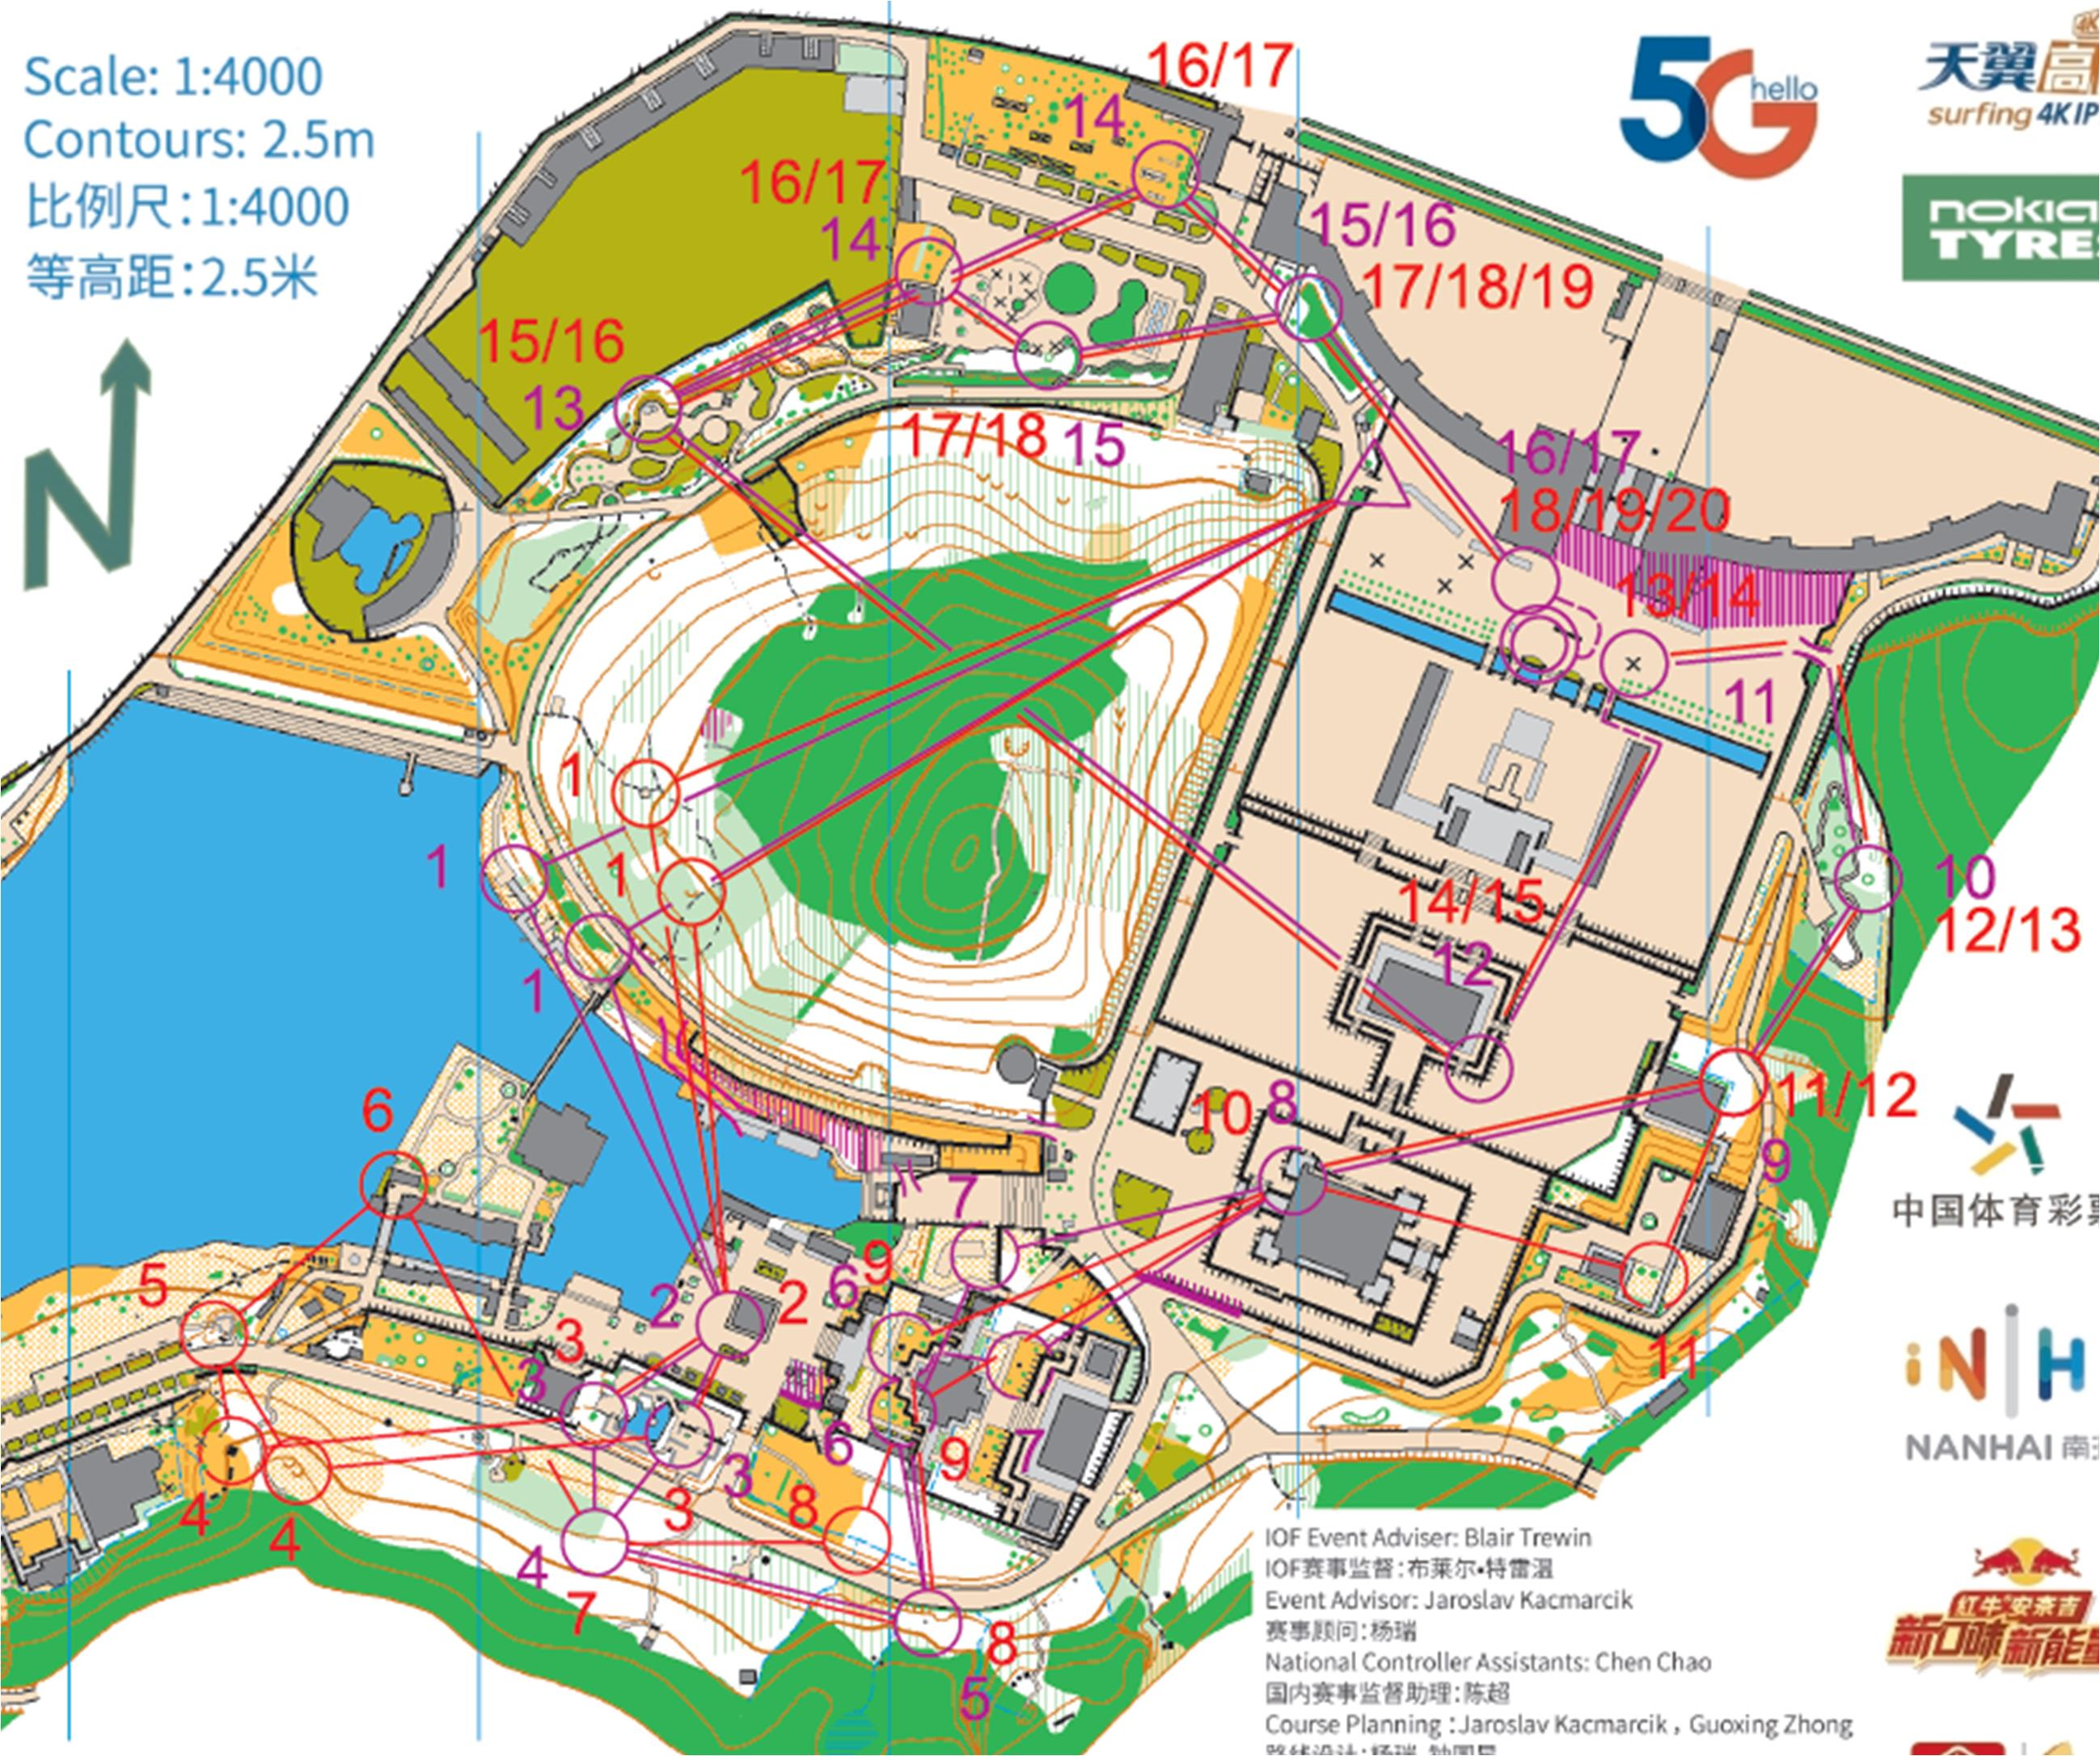 World Cup sprint relay – women's courses in purple, men's in red